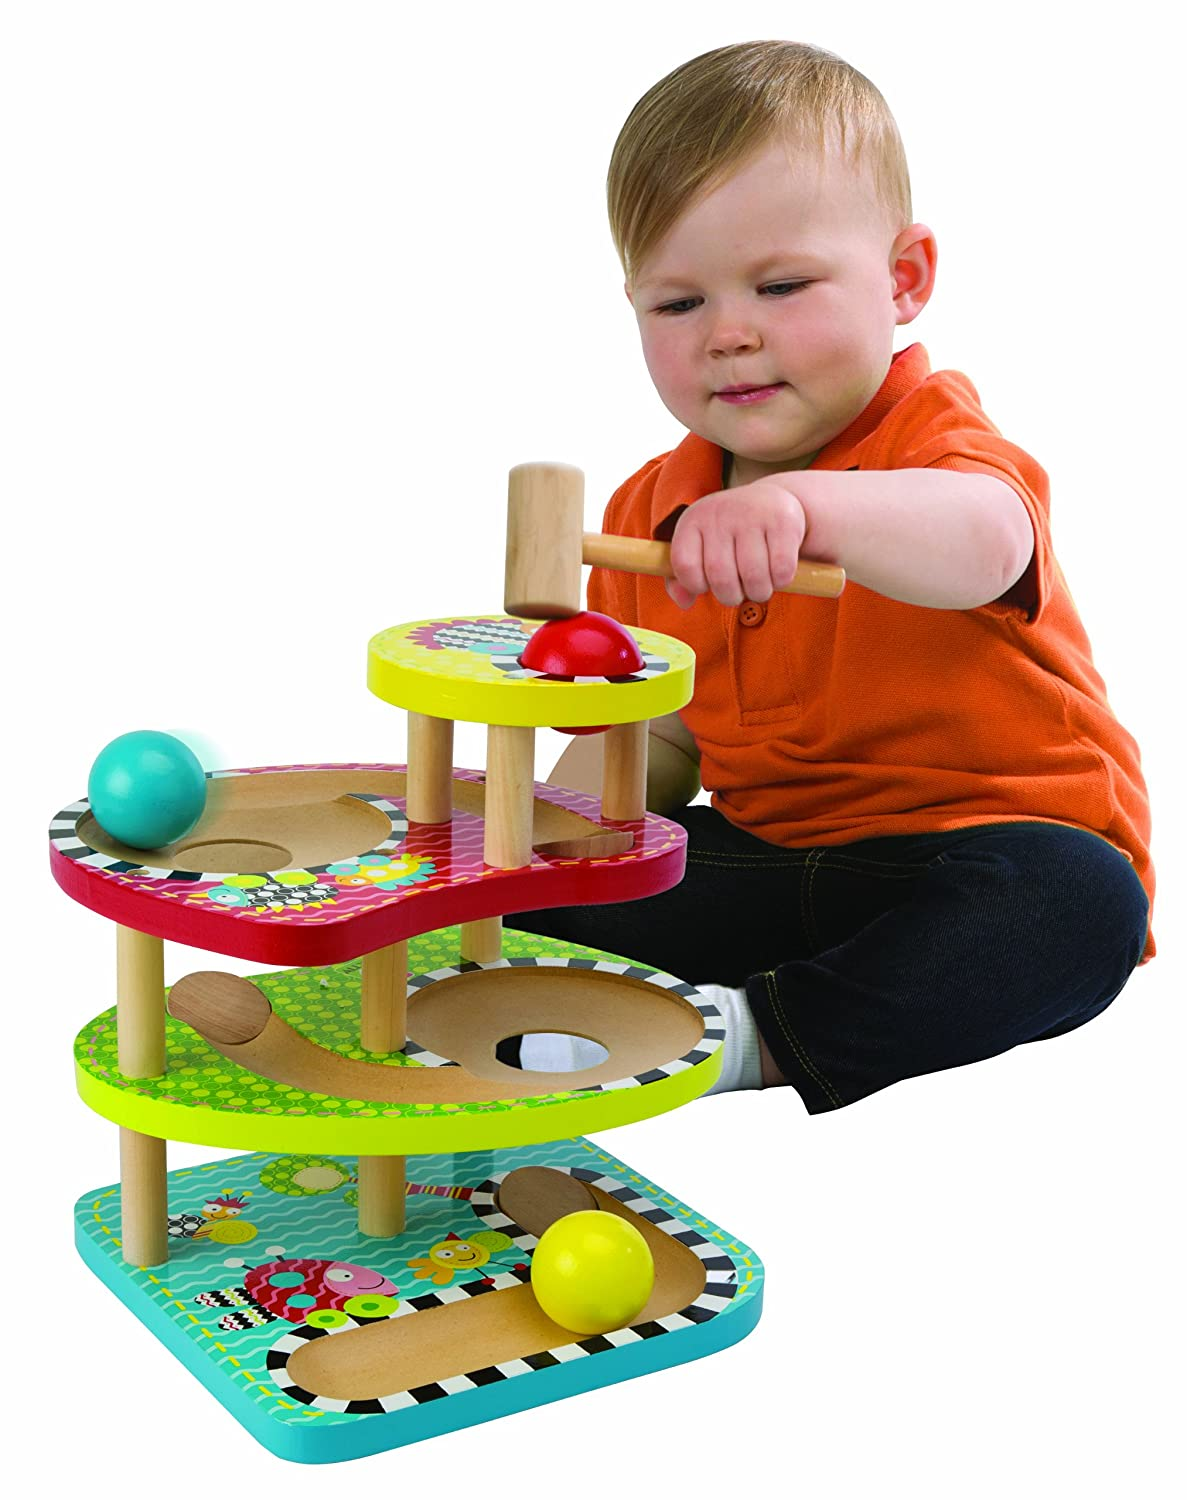 Wooden Bop and Roll Hand & Eye Coordination Toy (10m+)